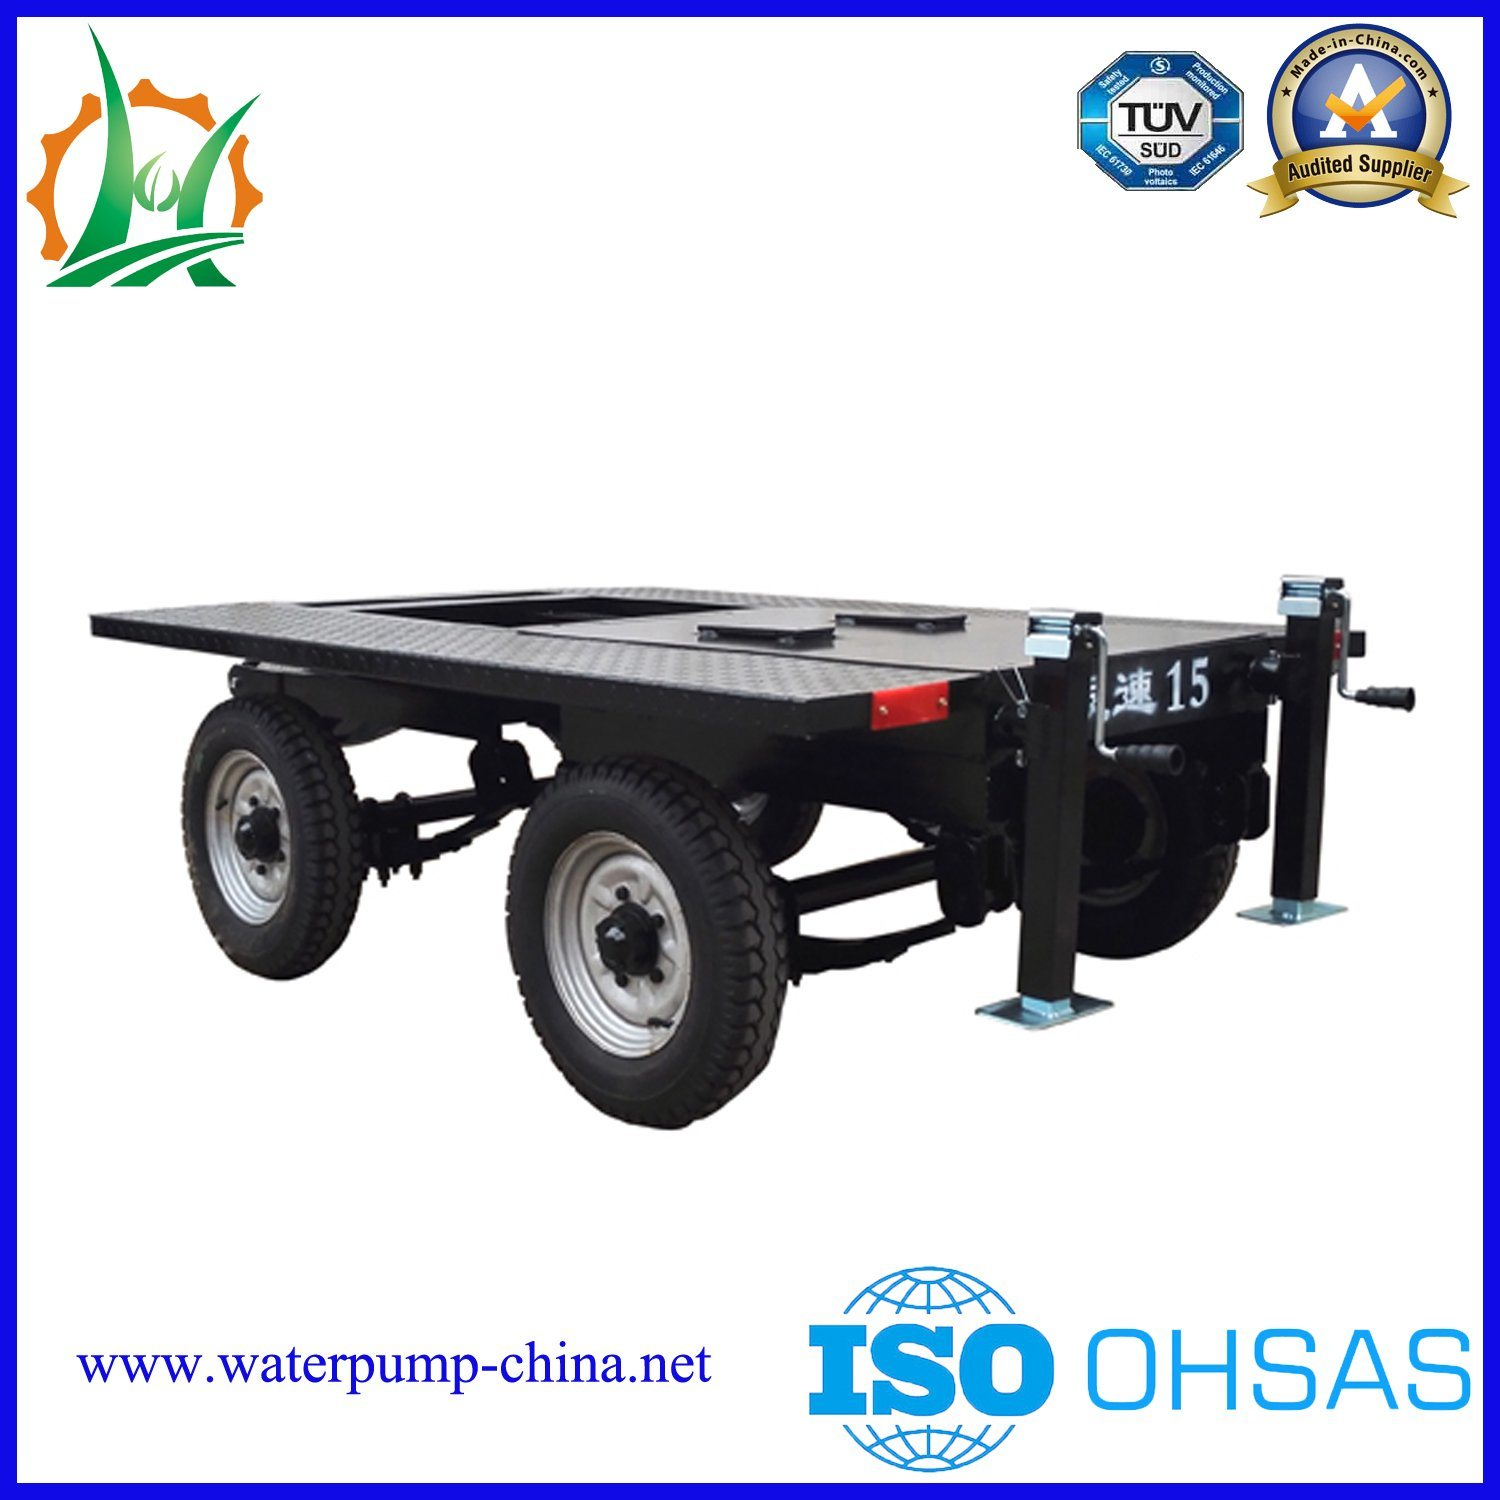 Dewatering Pump, Vacuum Assist Mixed-Flow Trailer Centrifugal Water Pump pictures & photos